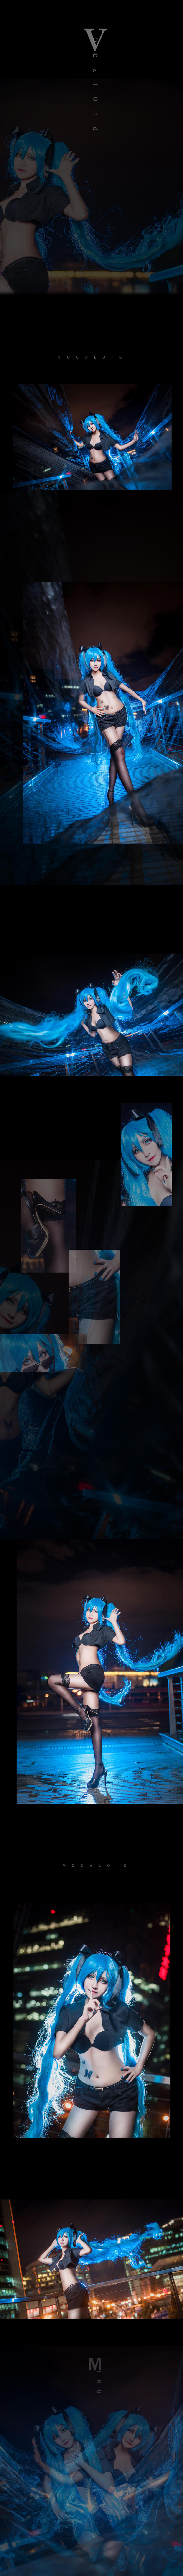 【Cosplay】VOCALOID 初音未来